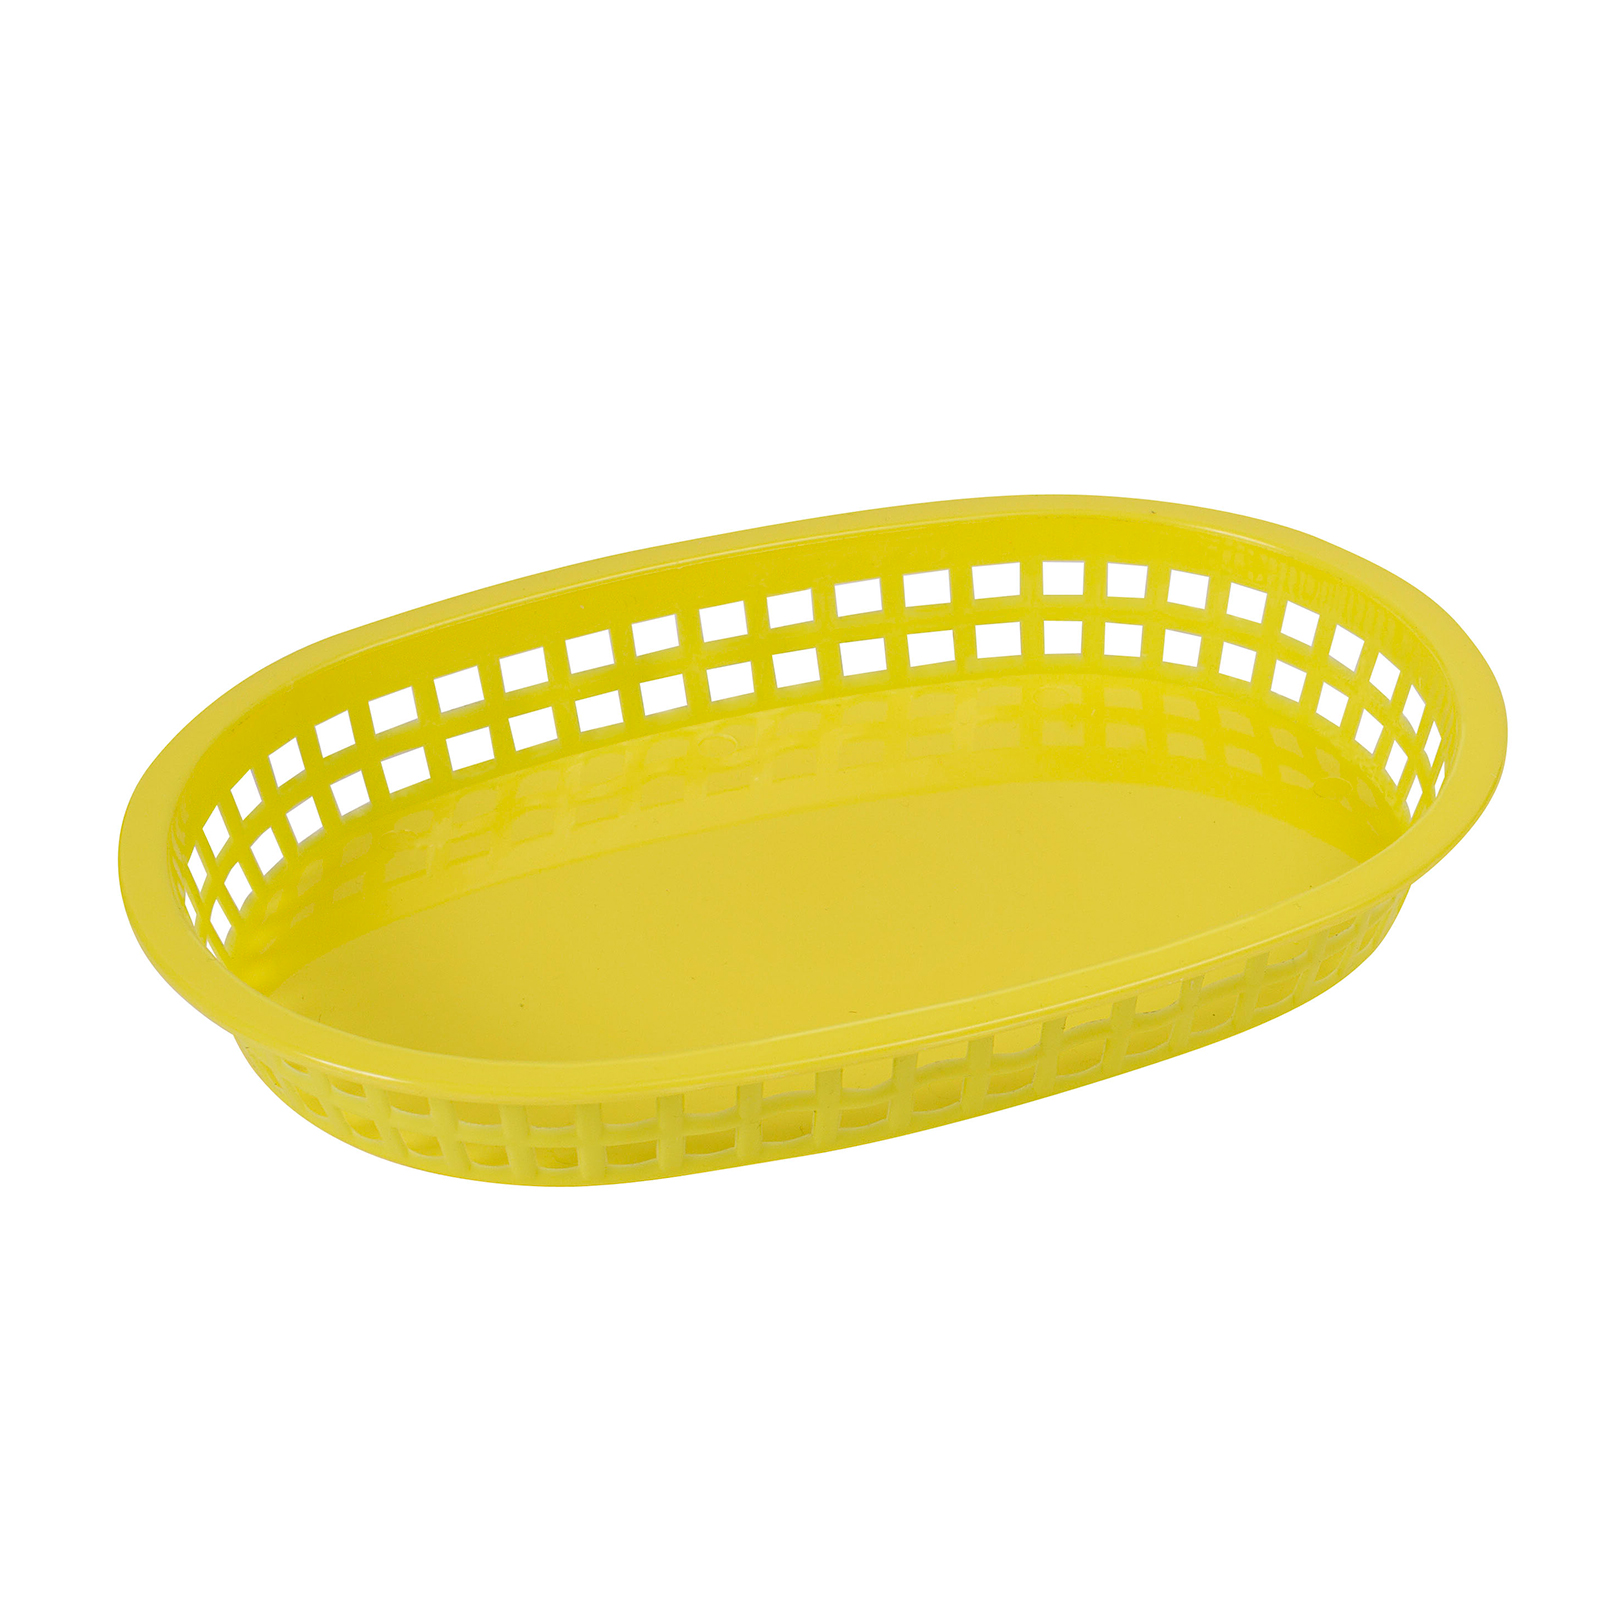 Winco PLB-Y basket, fast food